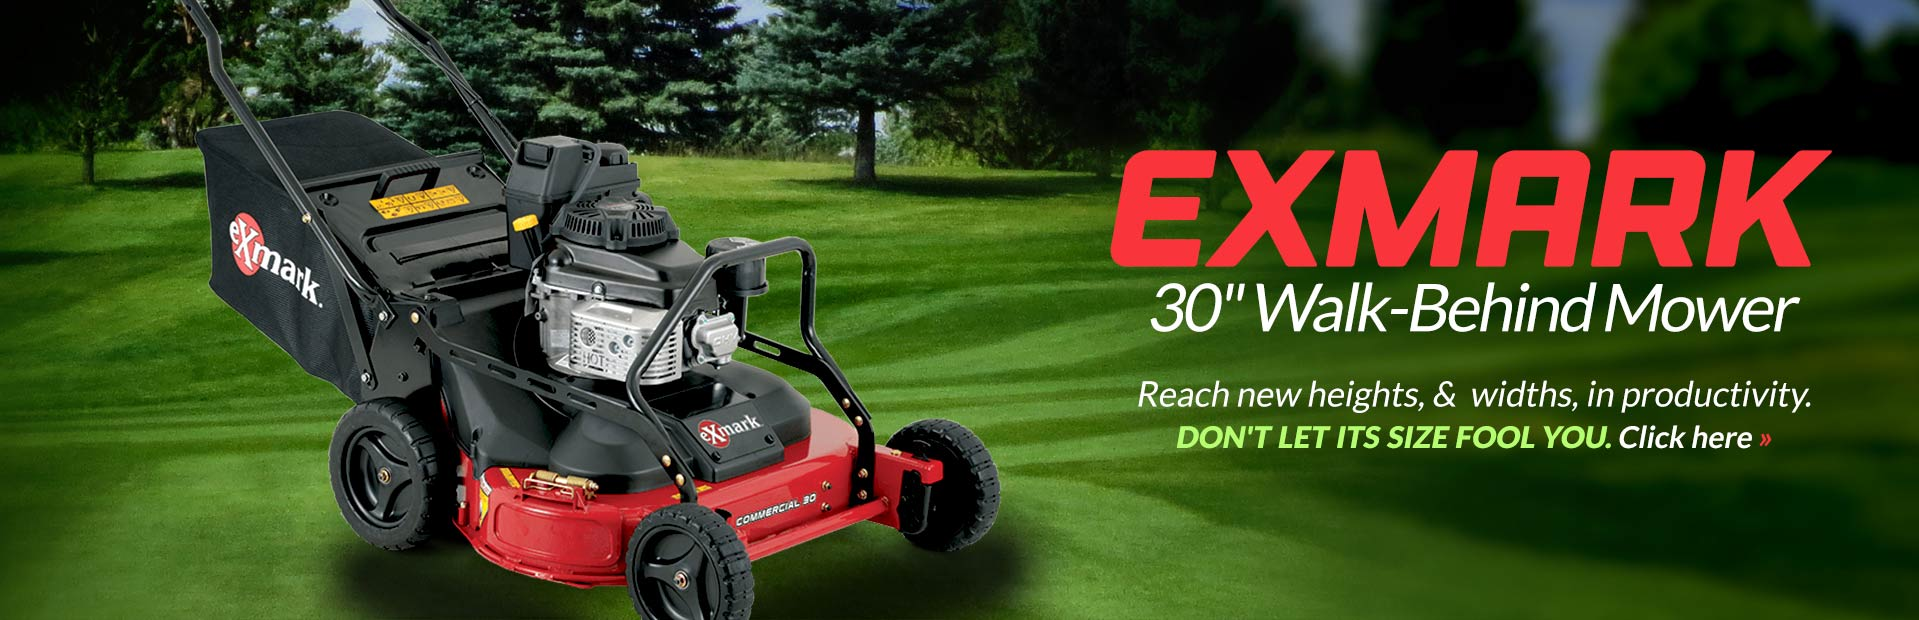 Home Liberty Discount Lawn Equipment Upperco, MD (800) 486-6192